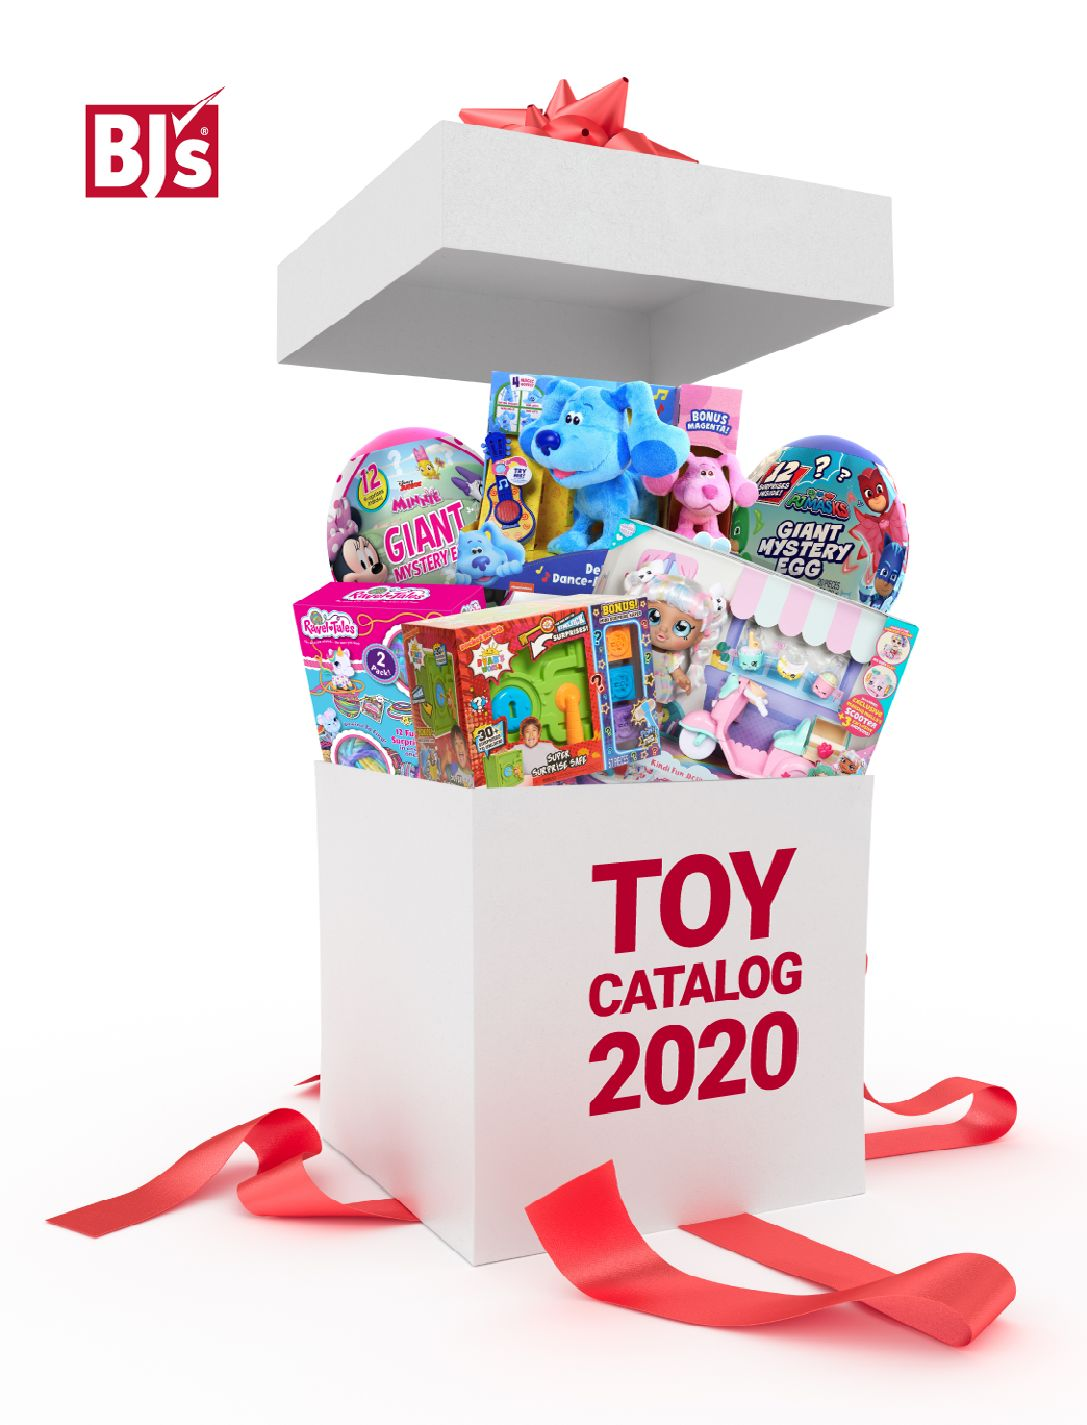 BJ's Wholesale Club's Toy Catalog 2020 Adscan, page 1